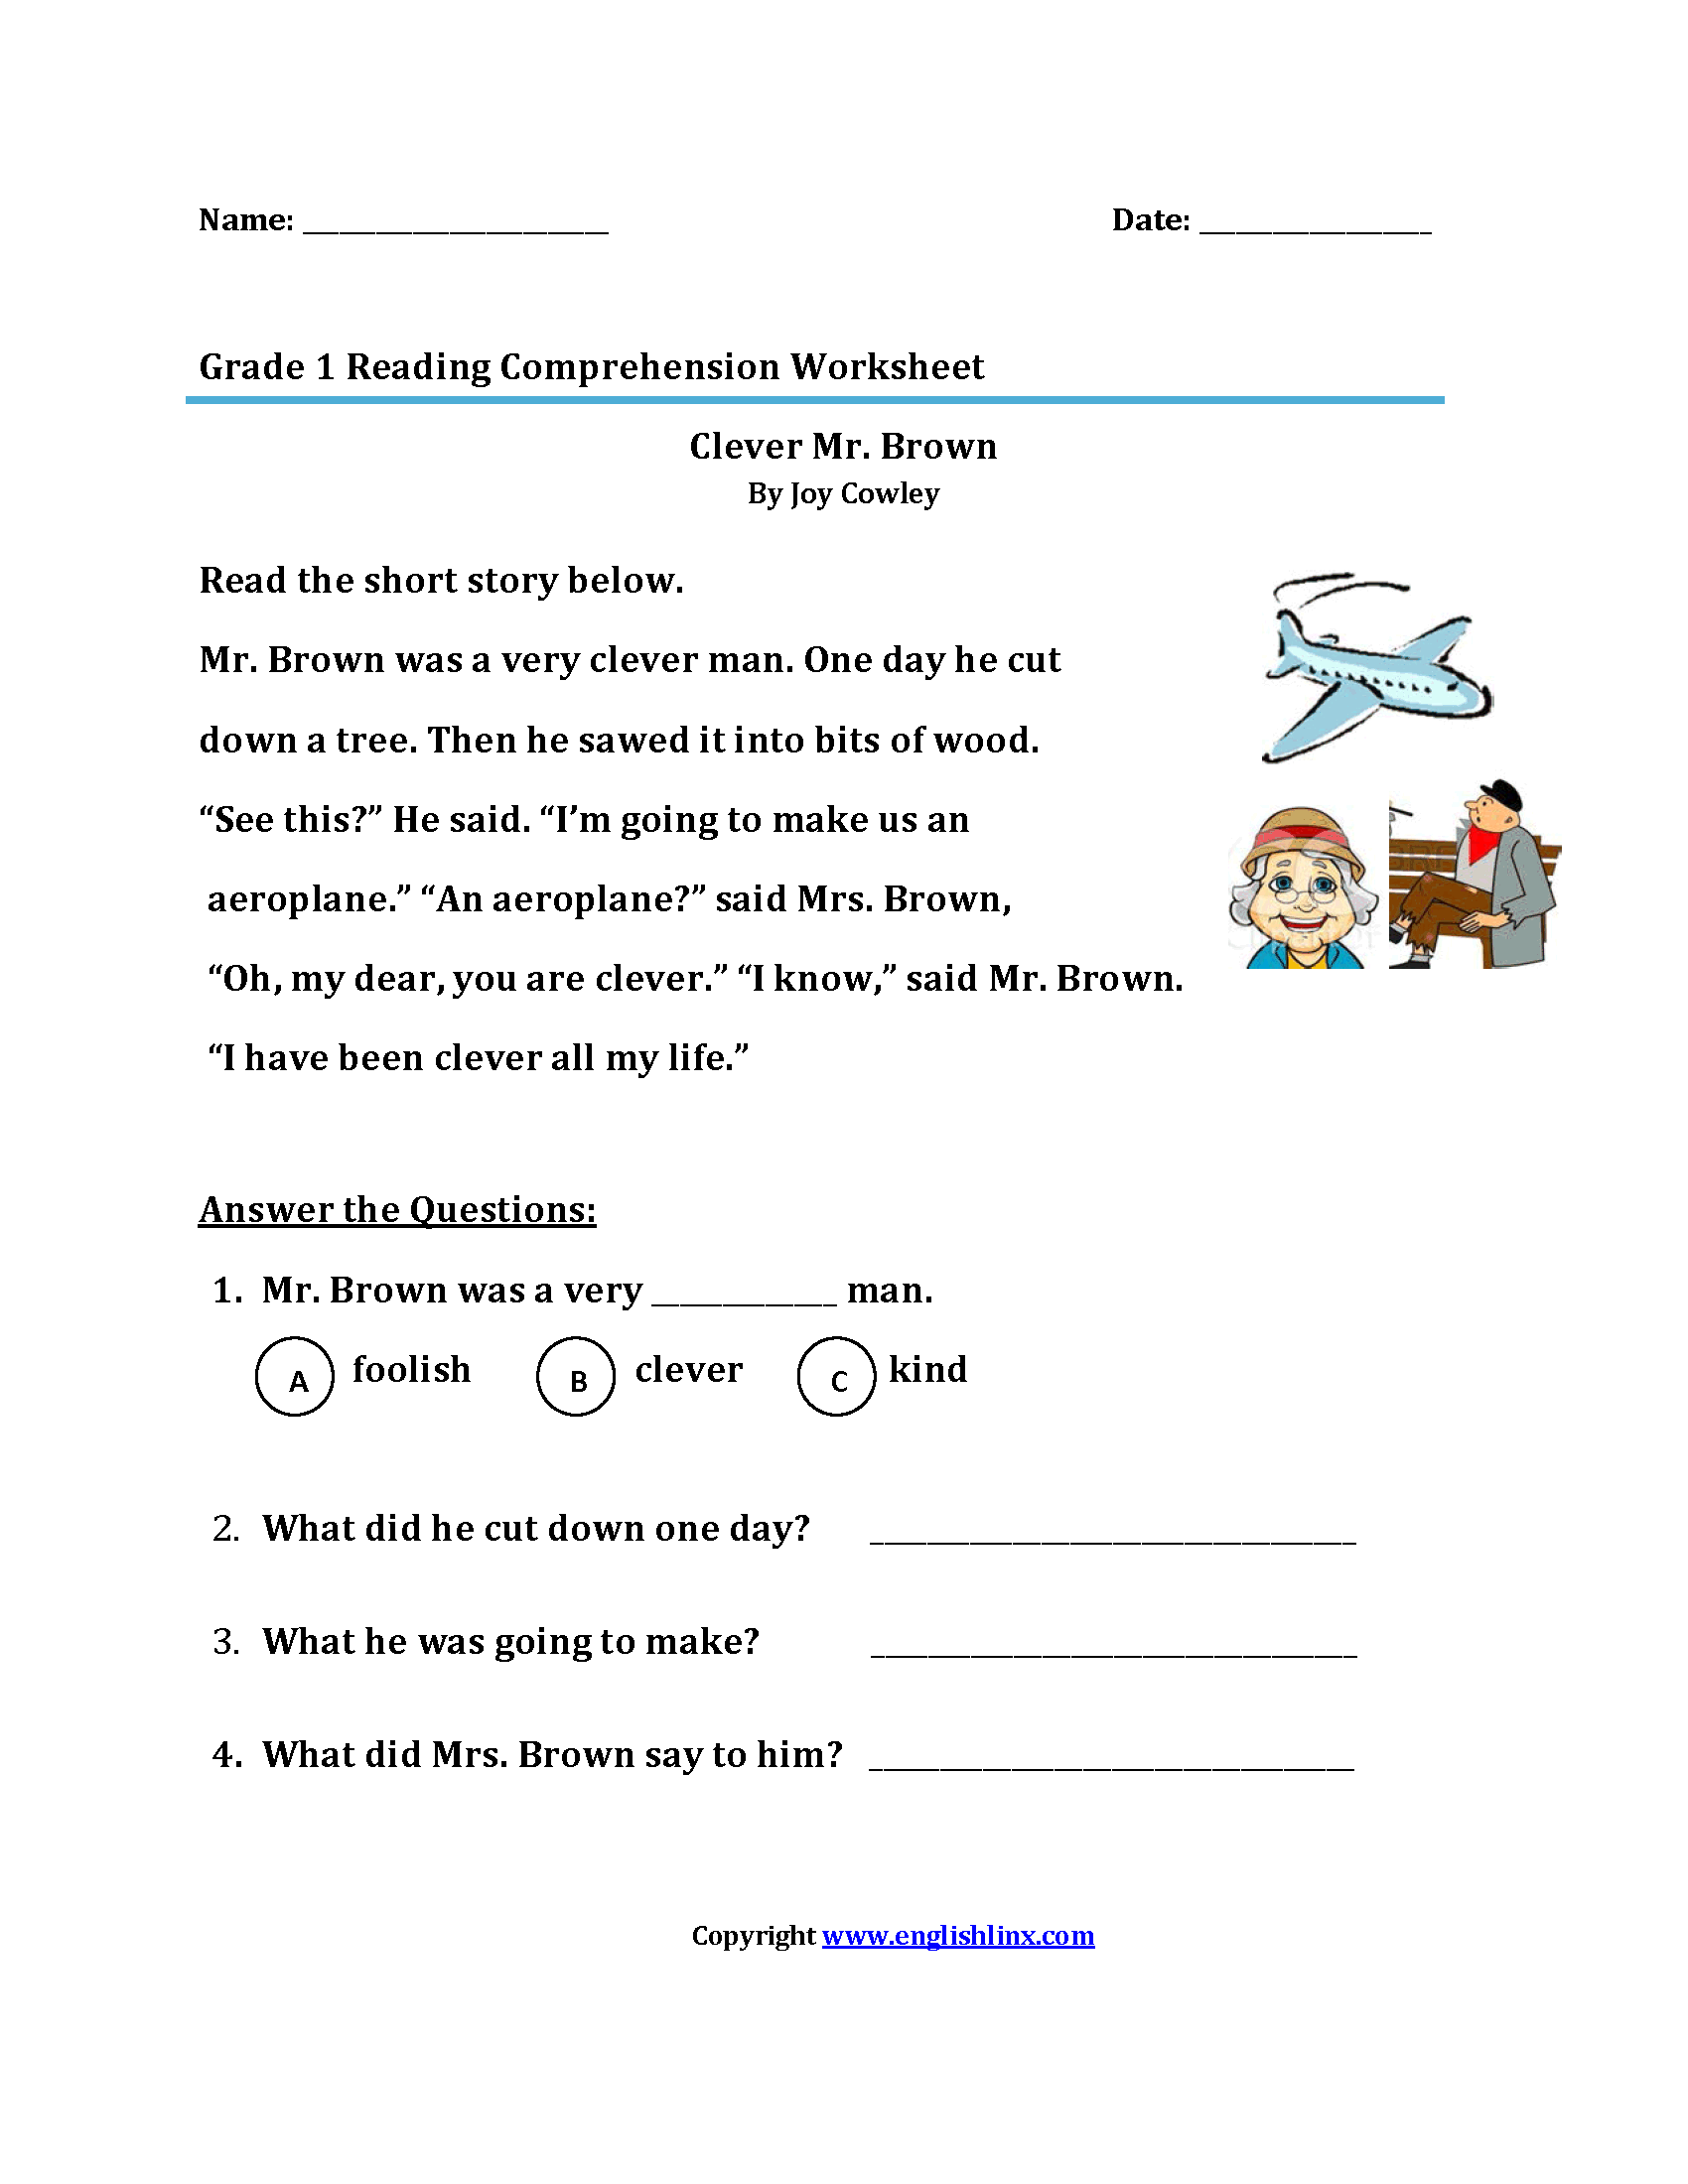 Worksheets Free Reading Comprehension Worksheets For 1st Grade reading worksheets first grade worksheets